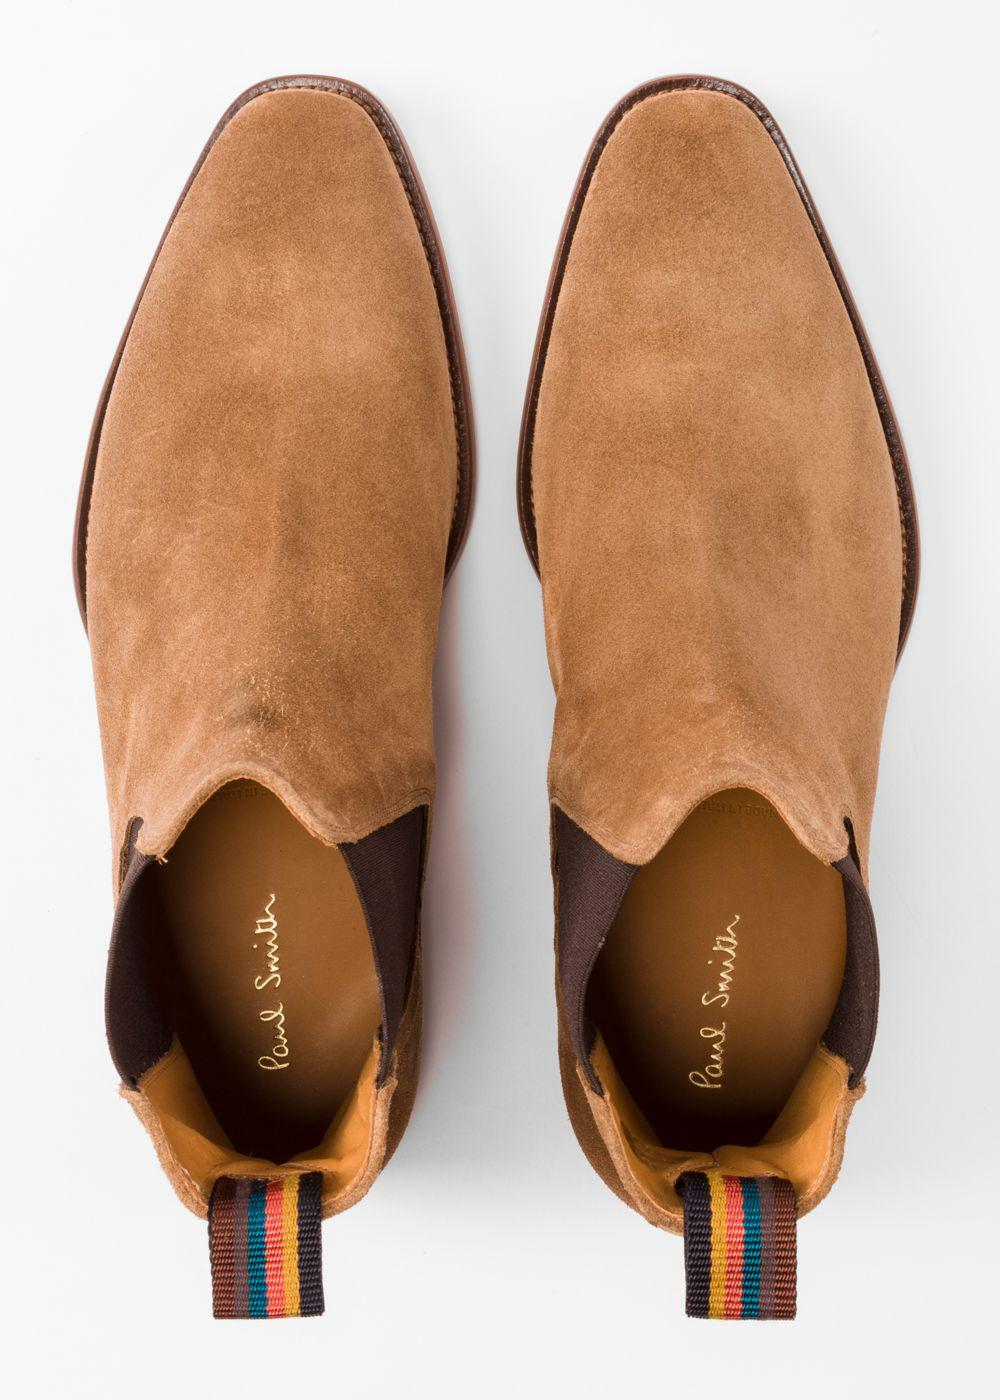 a51fd1de1b7 Paul Smith Men s Camel Suede  bobby  Chelsea Boots in Natural for ...